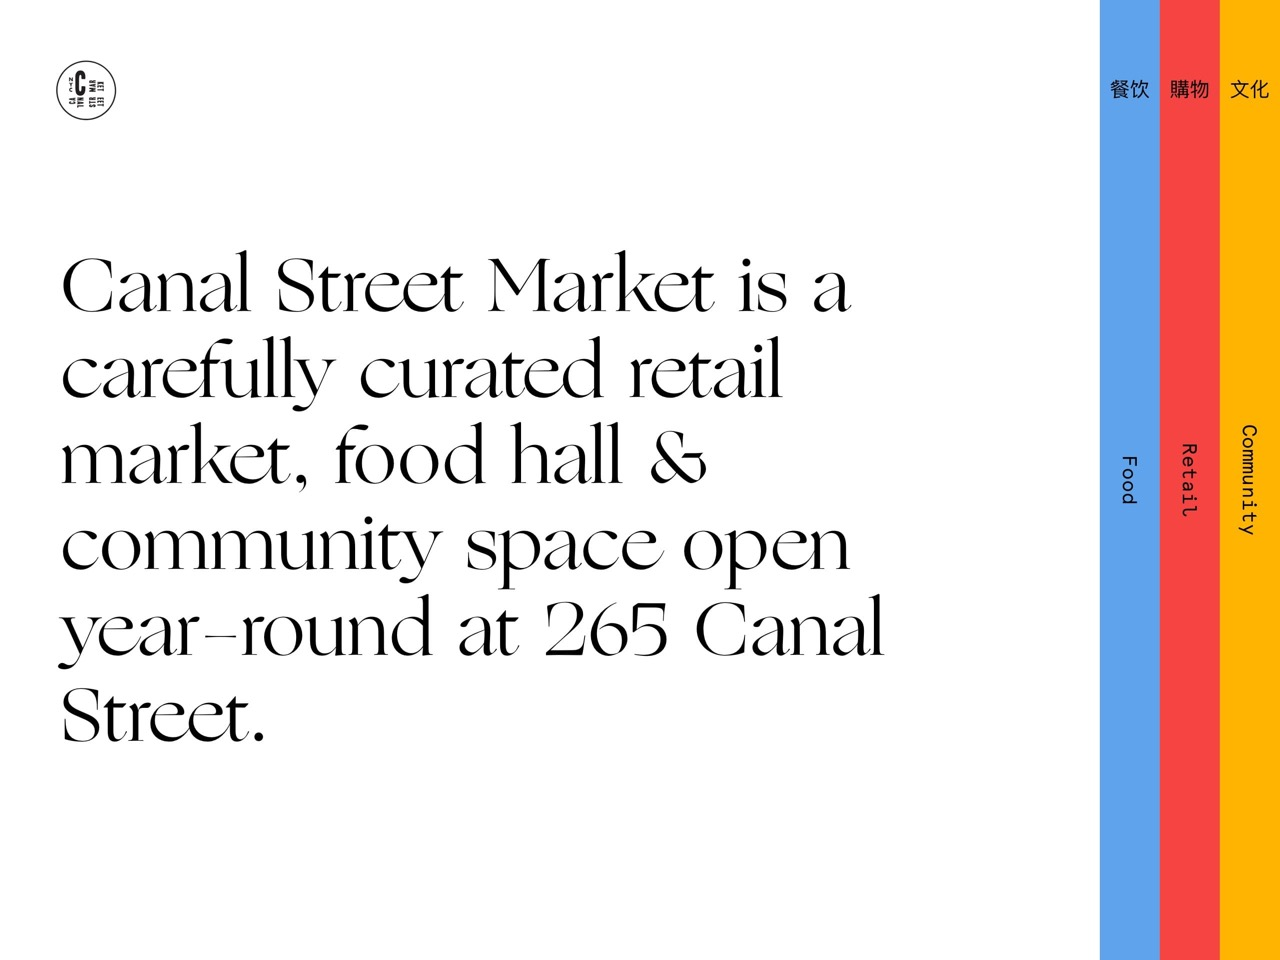 About   canal street market